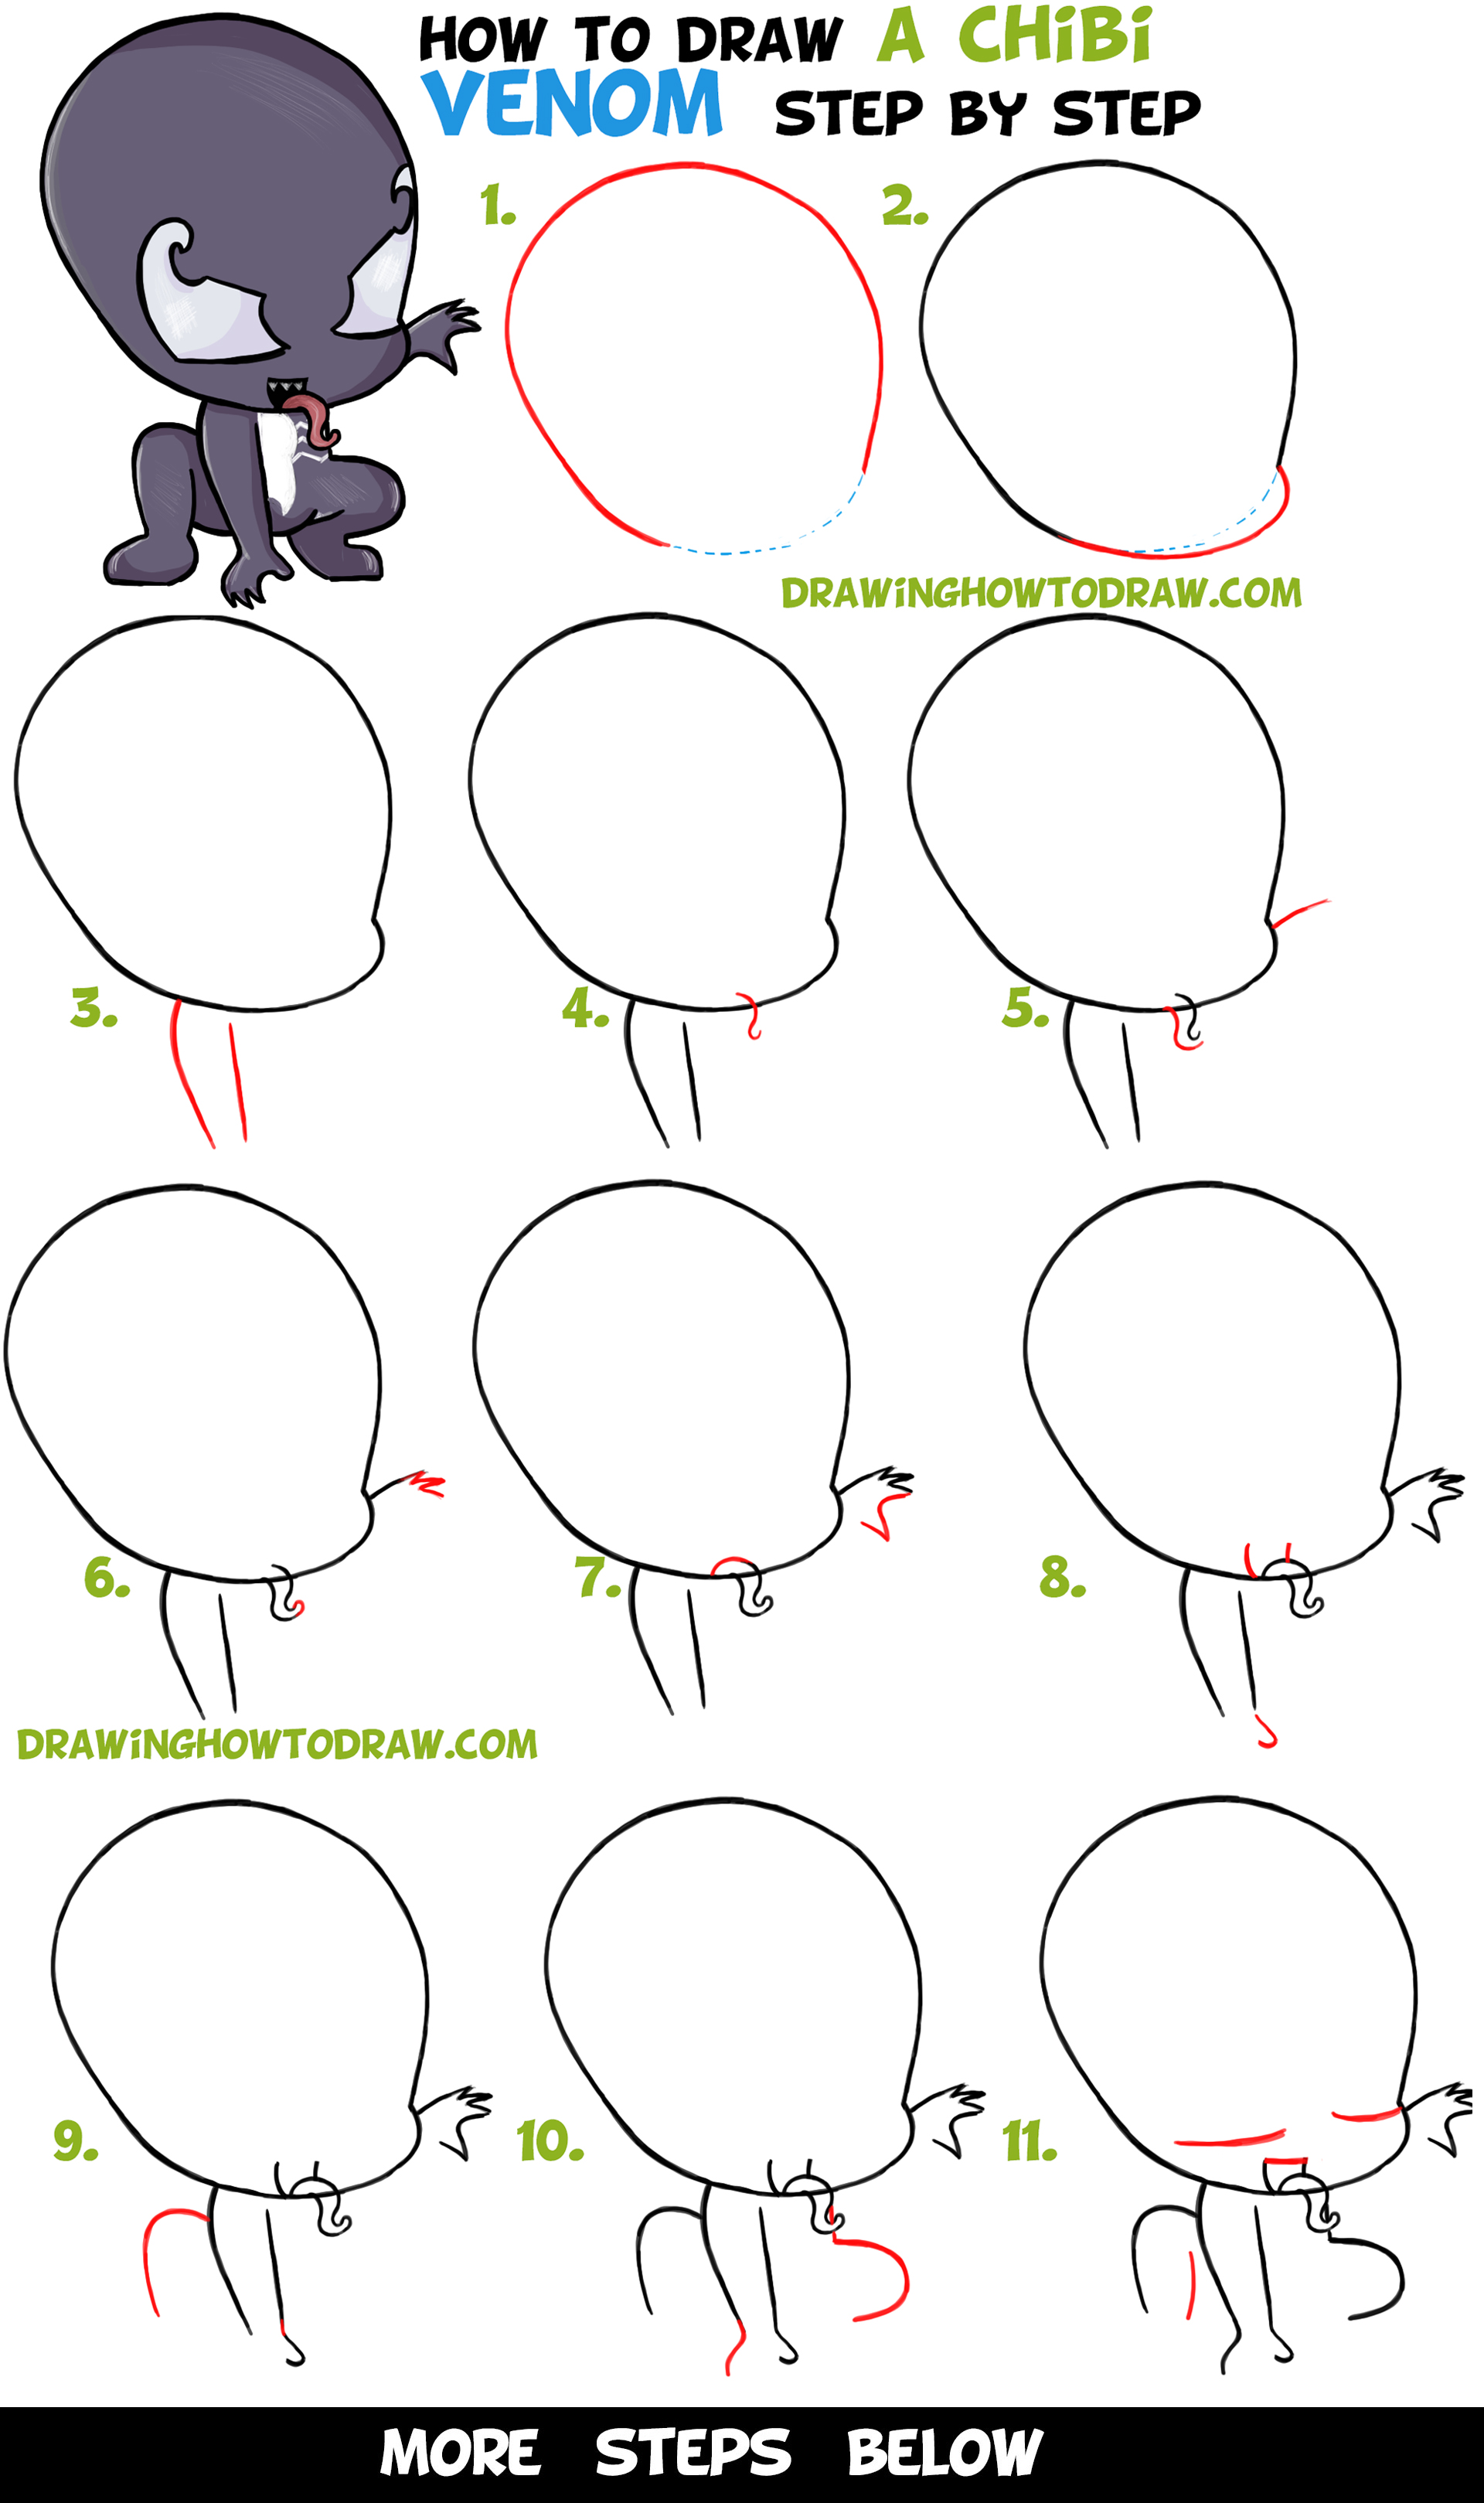 Learn How to Draw Chibi / Cute Venom from Marvel + Spiderman - Easy Step by Step Drawing Tutorial for Kids & Beginners